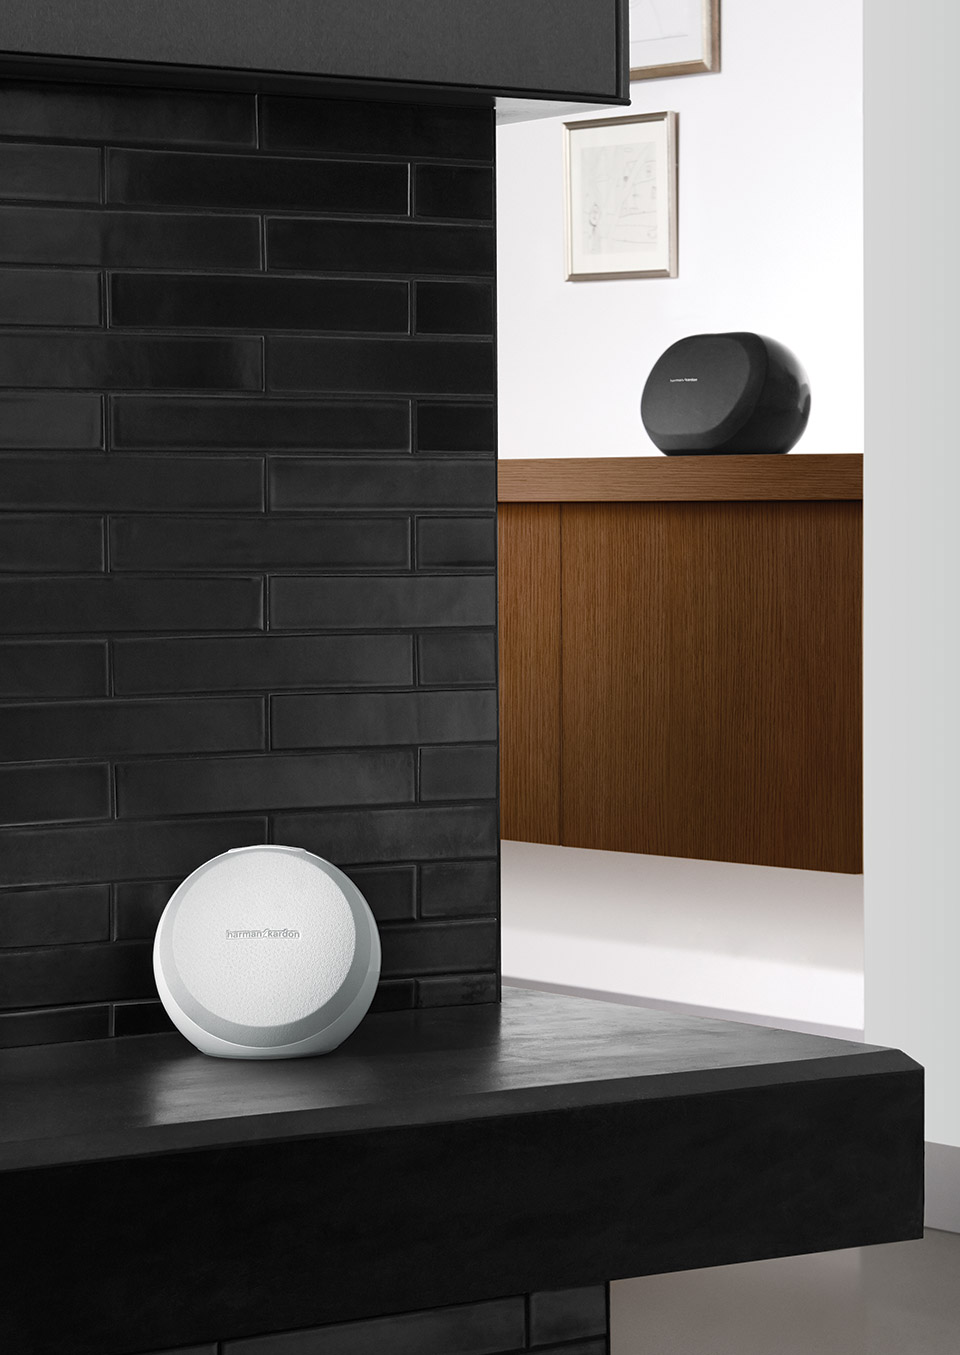 Harman Kardon Omni Speakers